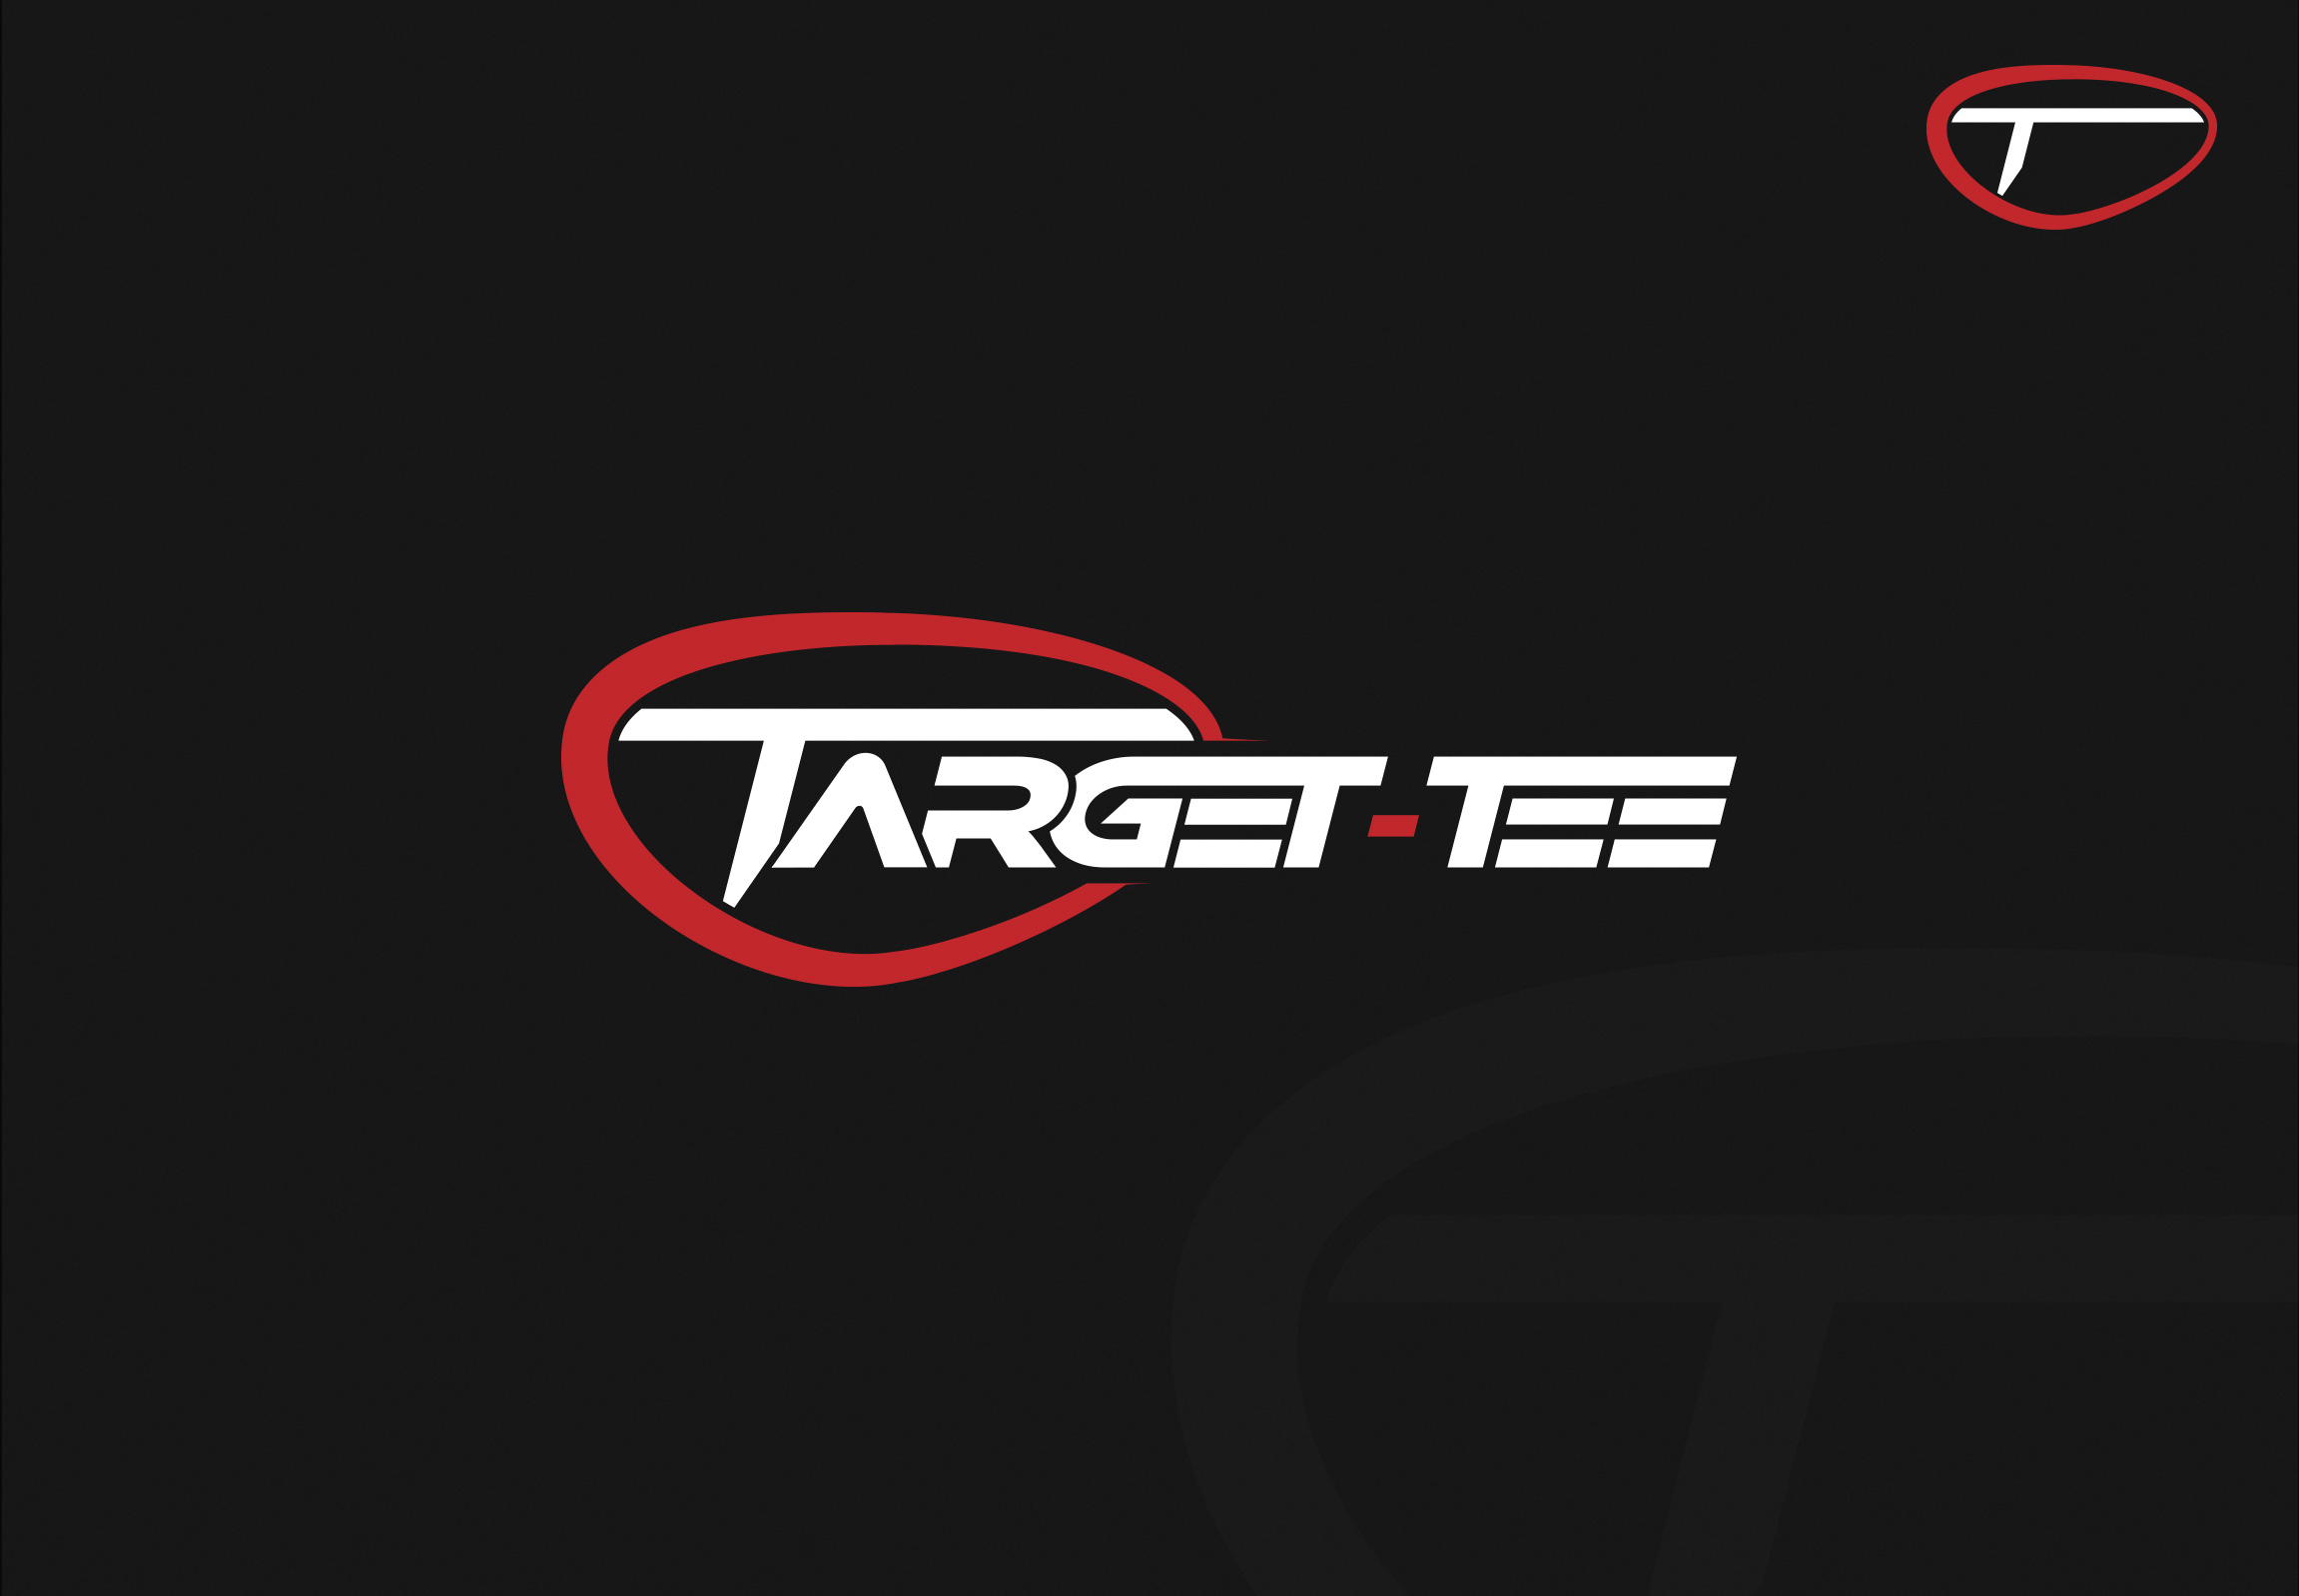 Logo Design by olii - Entry No. 112 in the Logo Design Contest Imaginative Logo Design for TARGET-TEE.